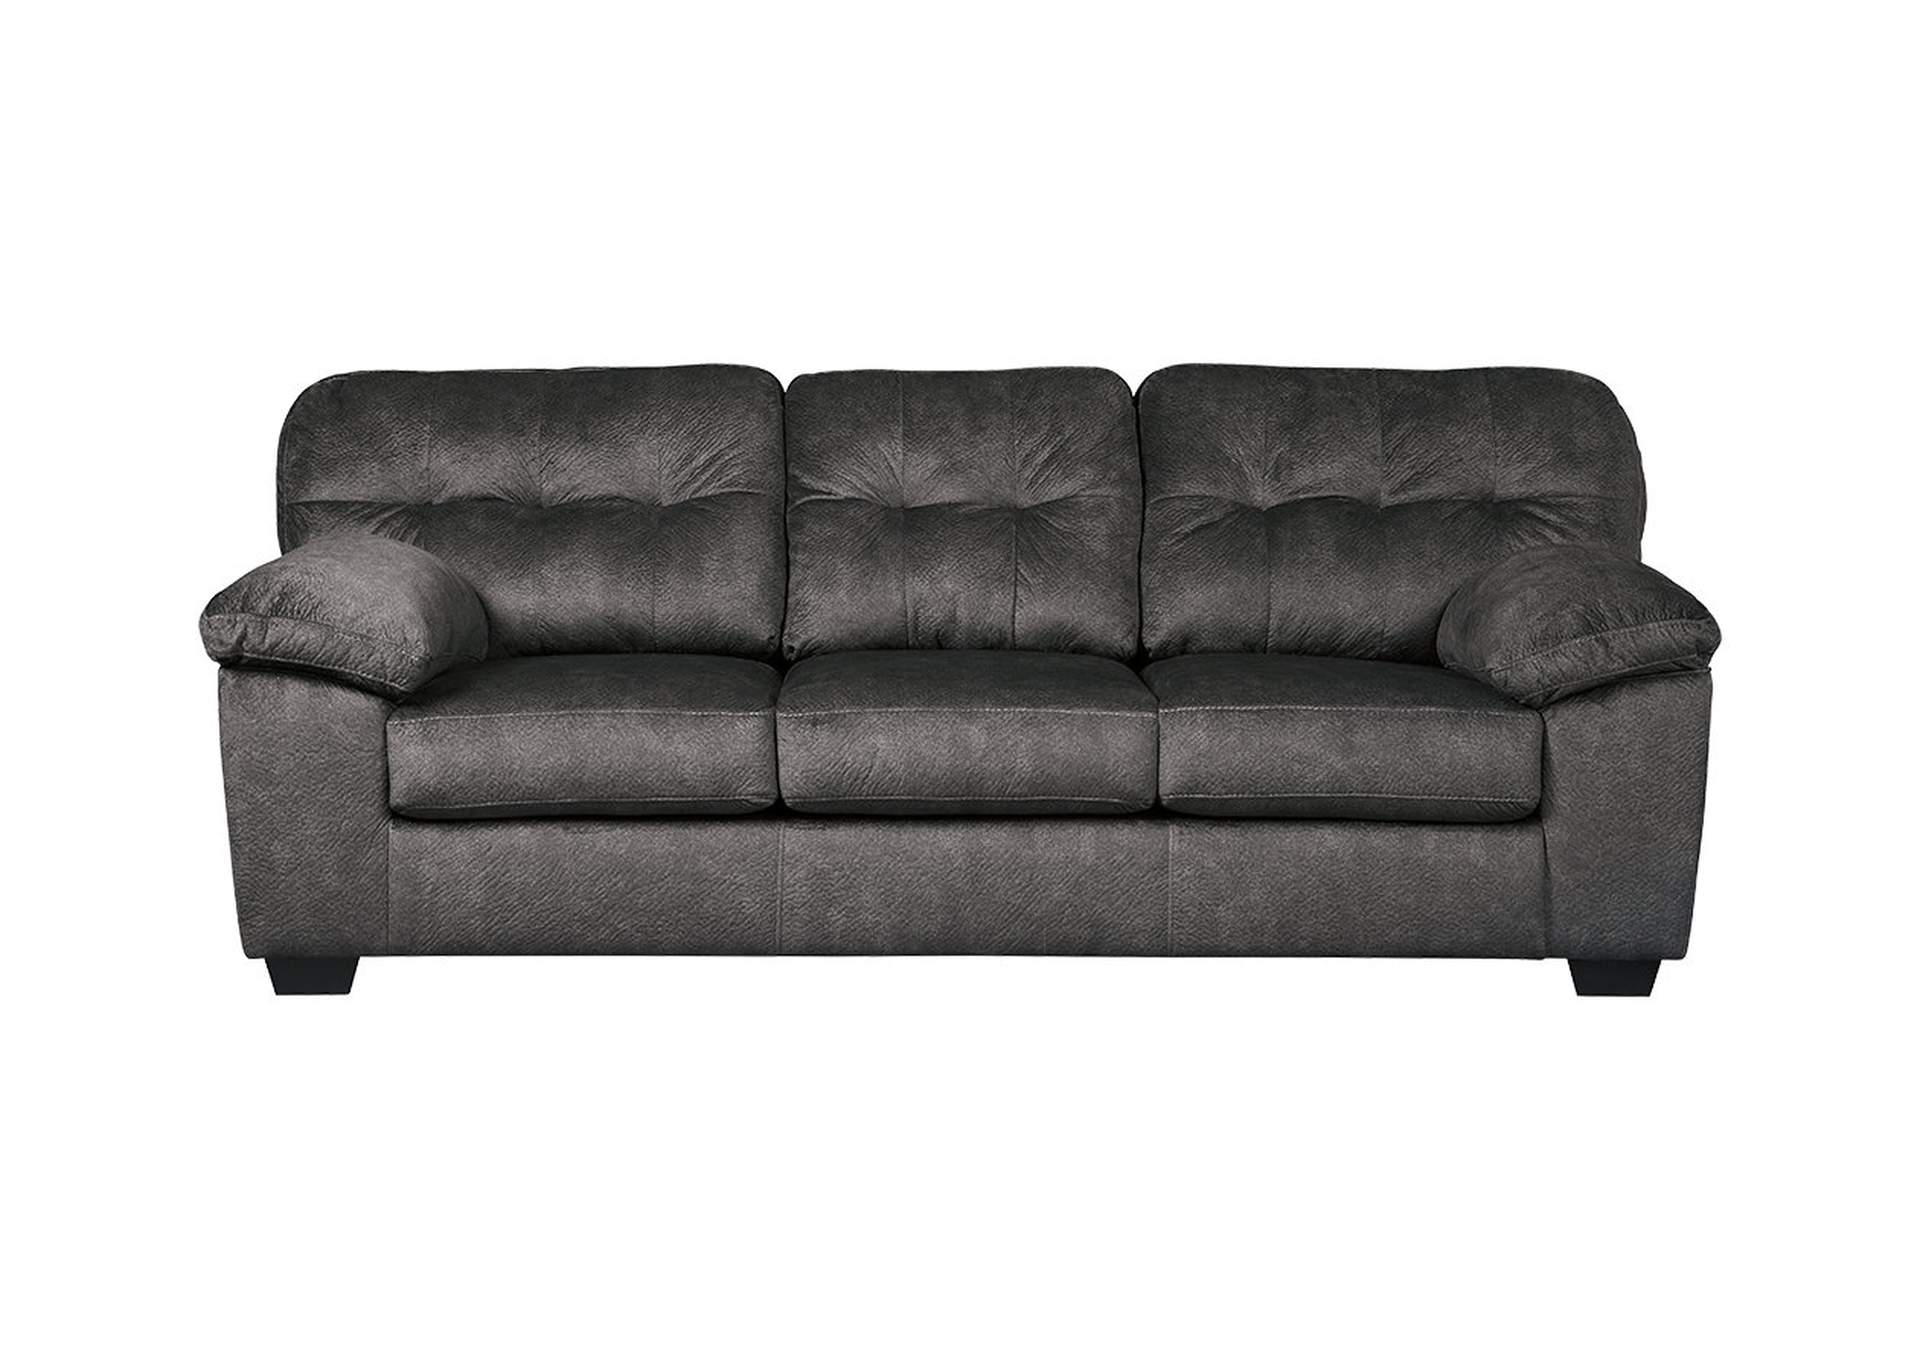 Accrington Granite Queen Sofa Sleeper,Signature Design By Ashley